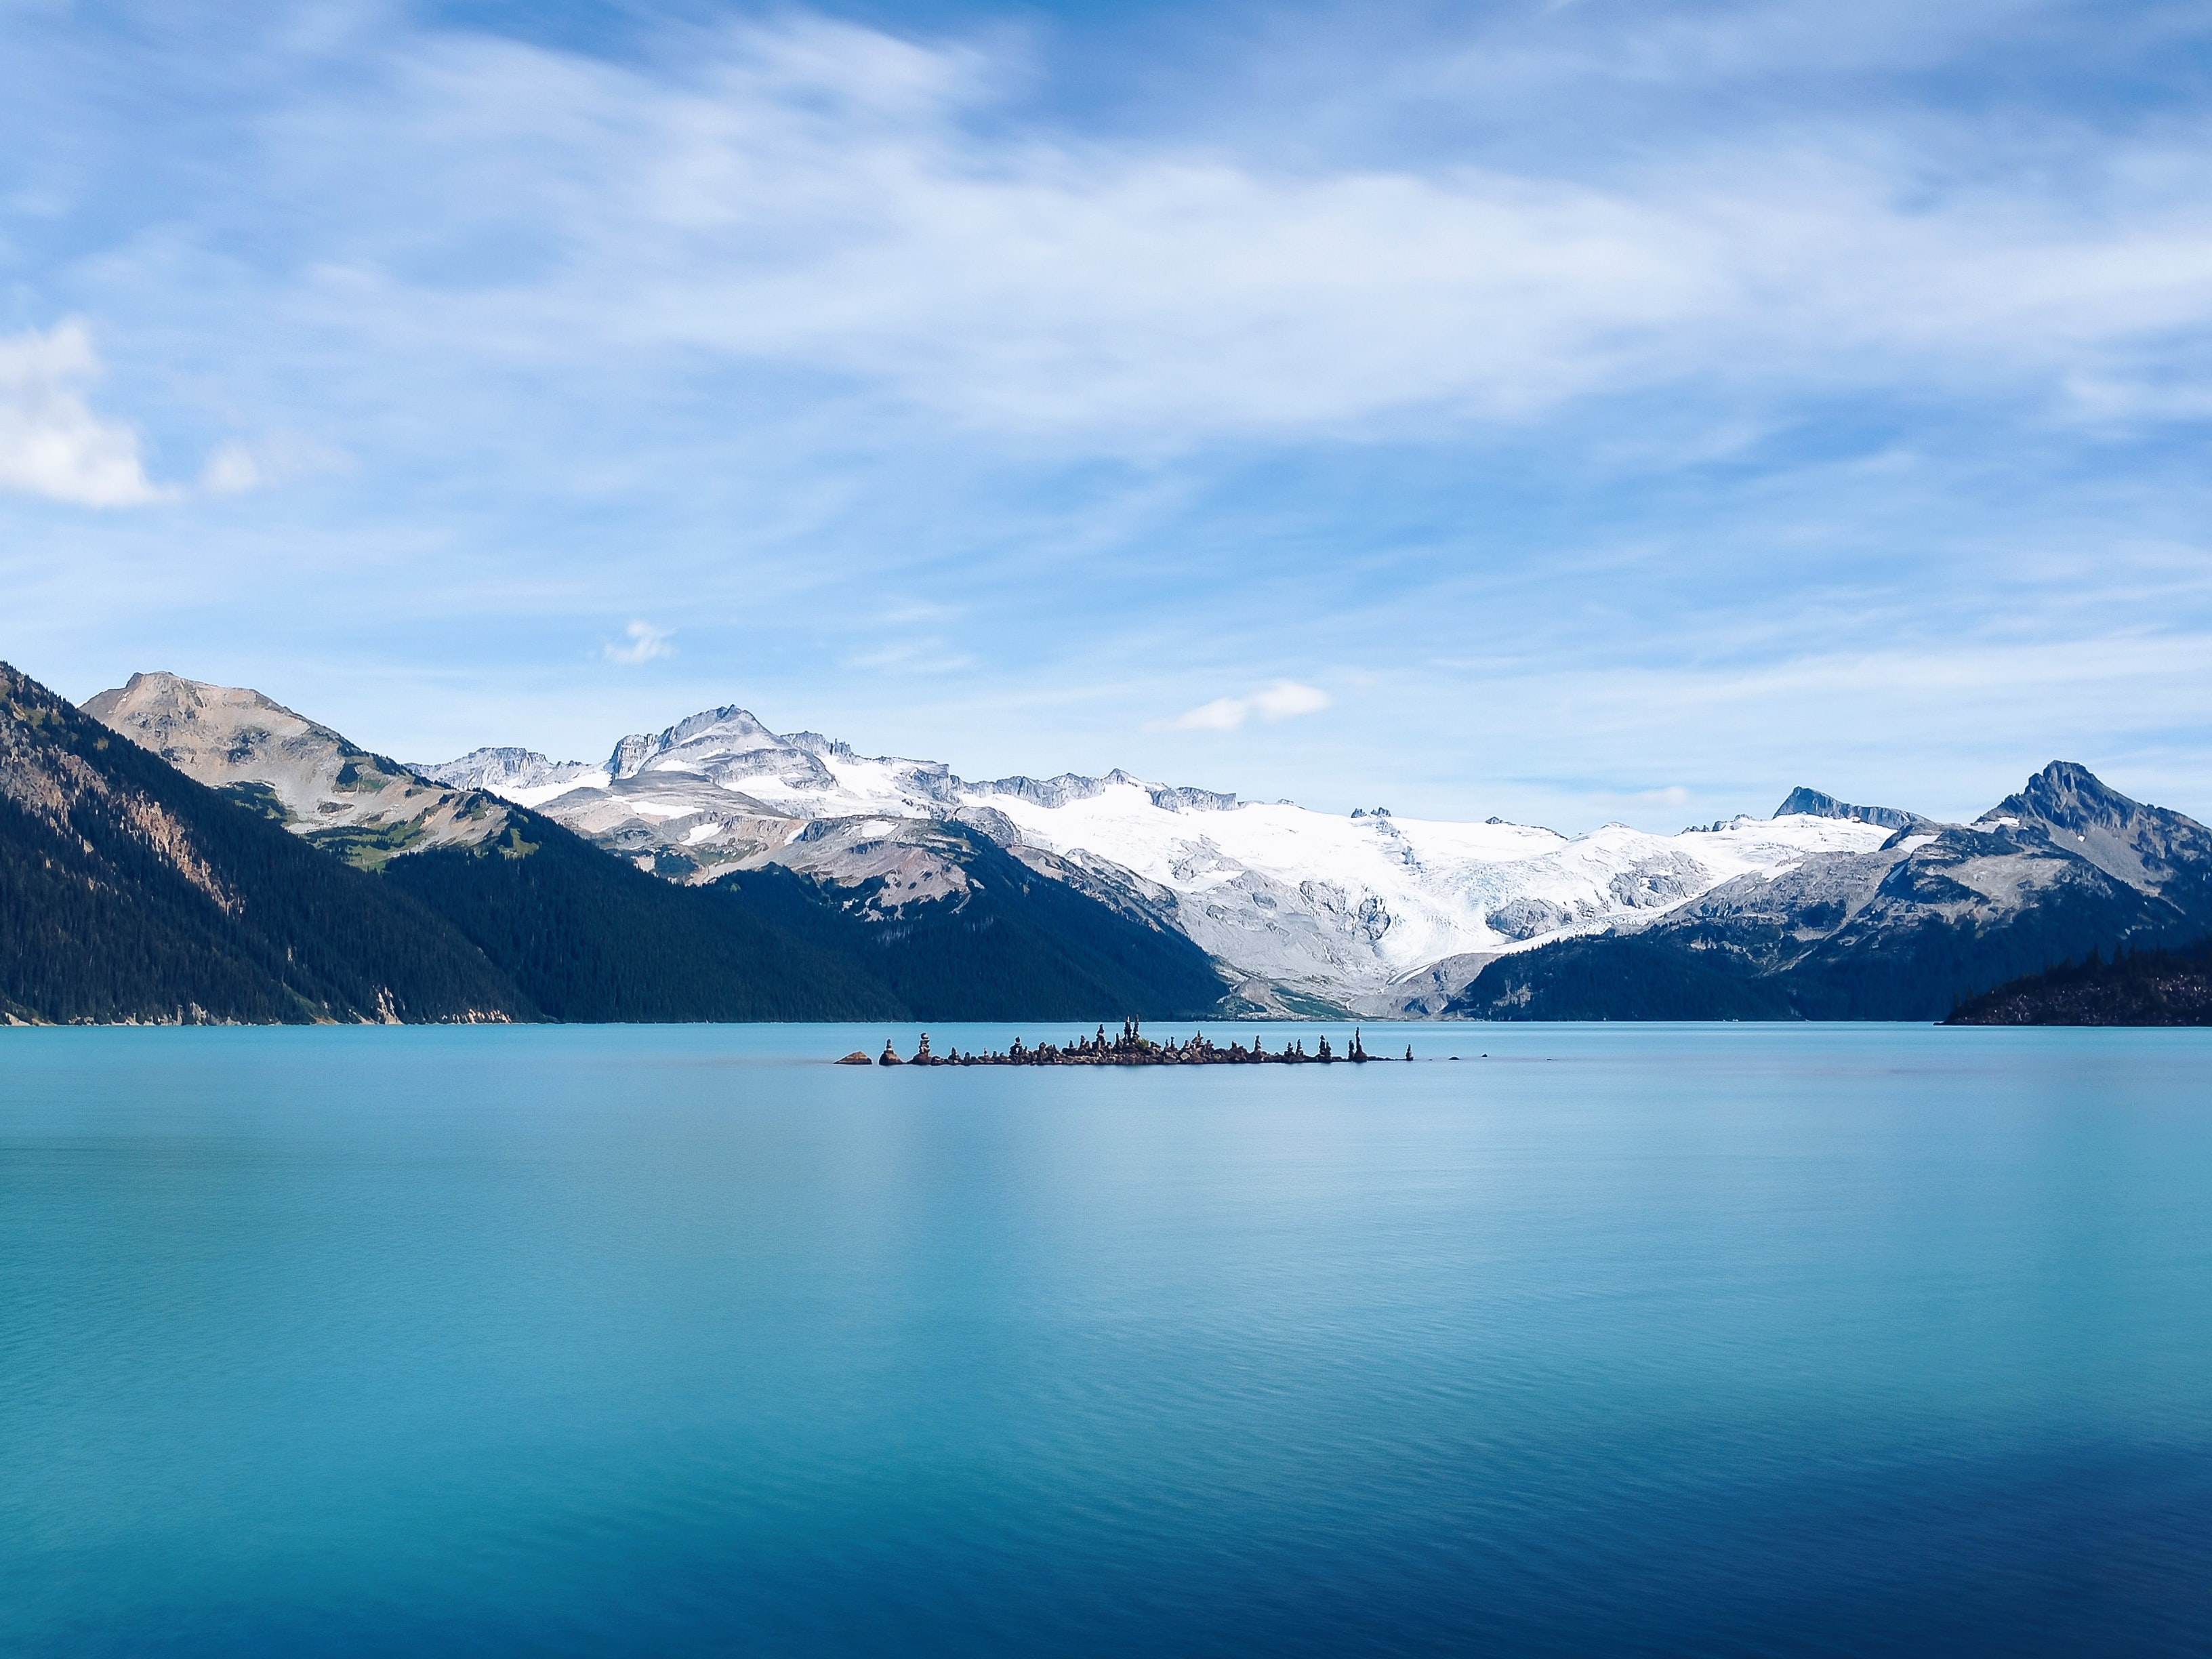 View from the azure Garibaldi Lake on a snowy mountain range